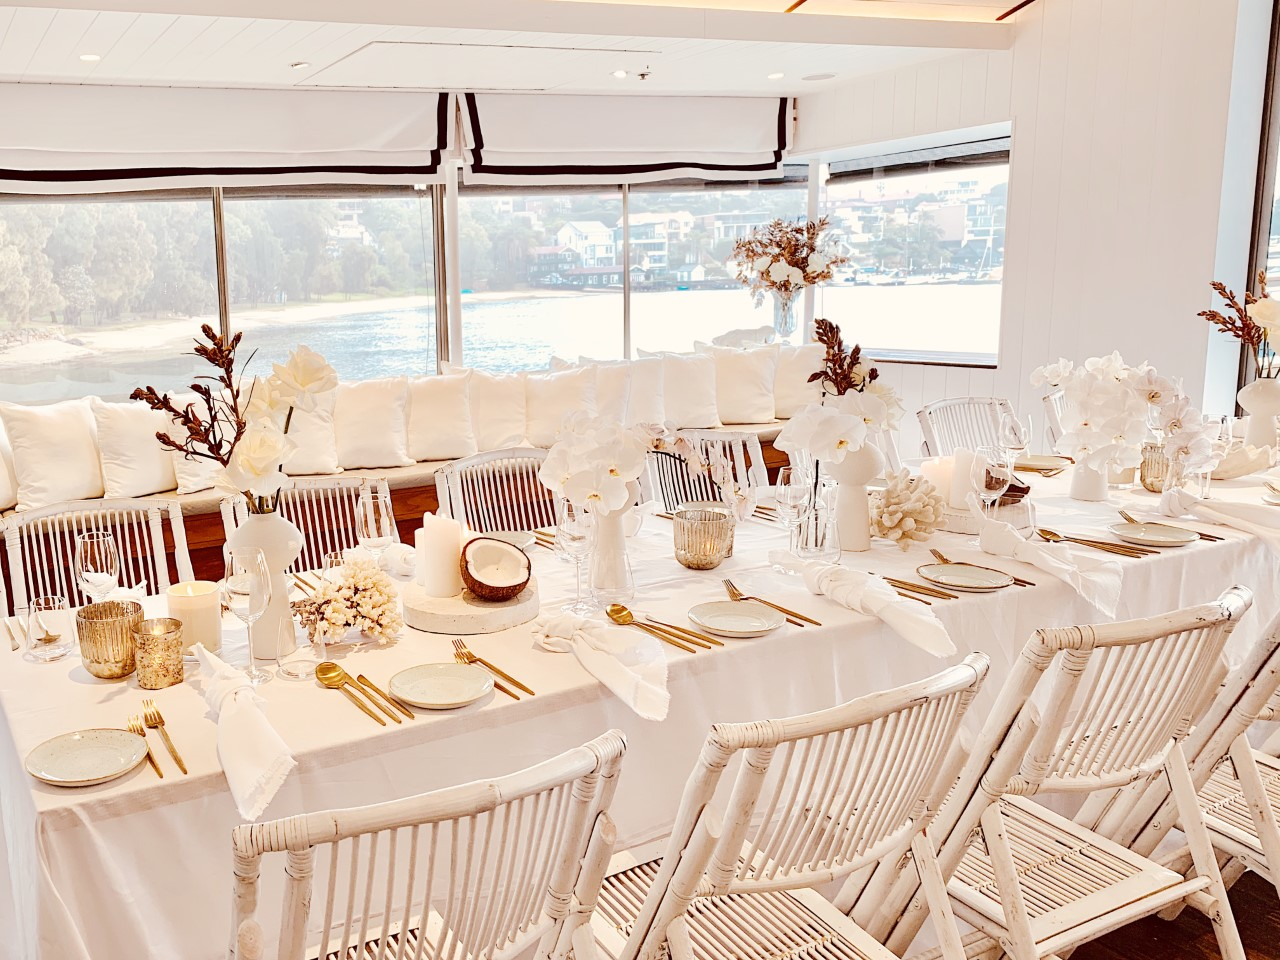 Beach side wedding styled by The Curated Life.jpg